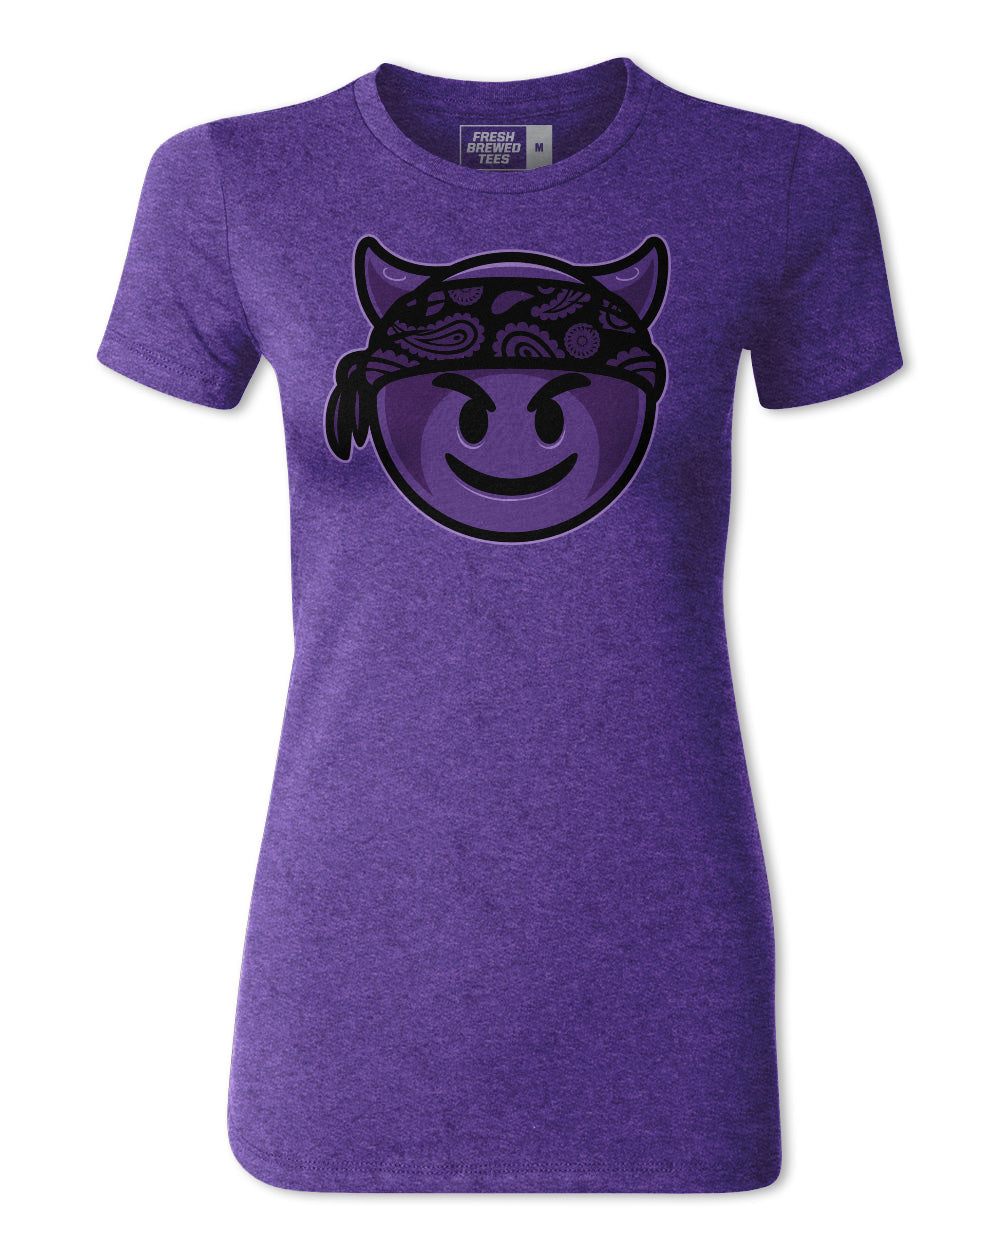 Jessica Eye Evilmoji Purple Ladies T-shirt